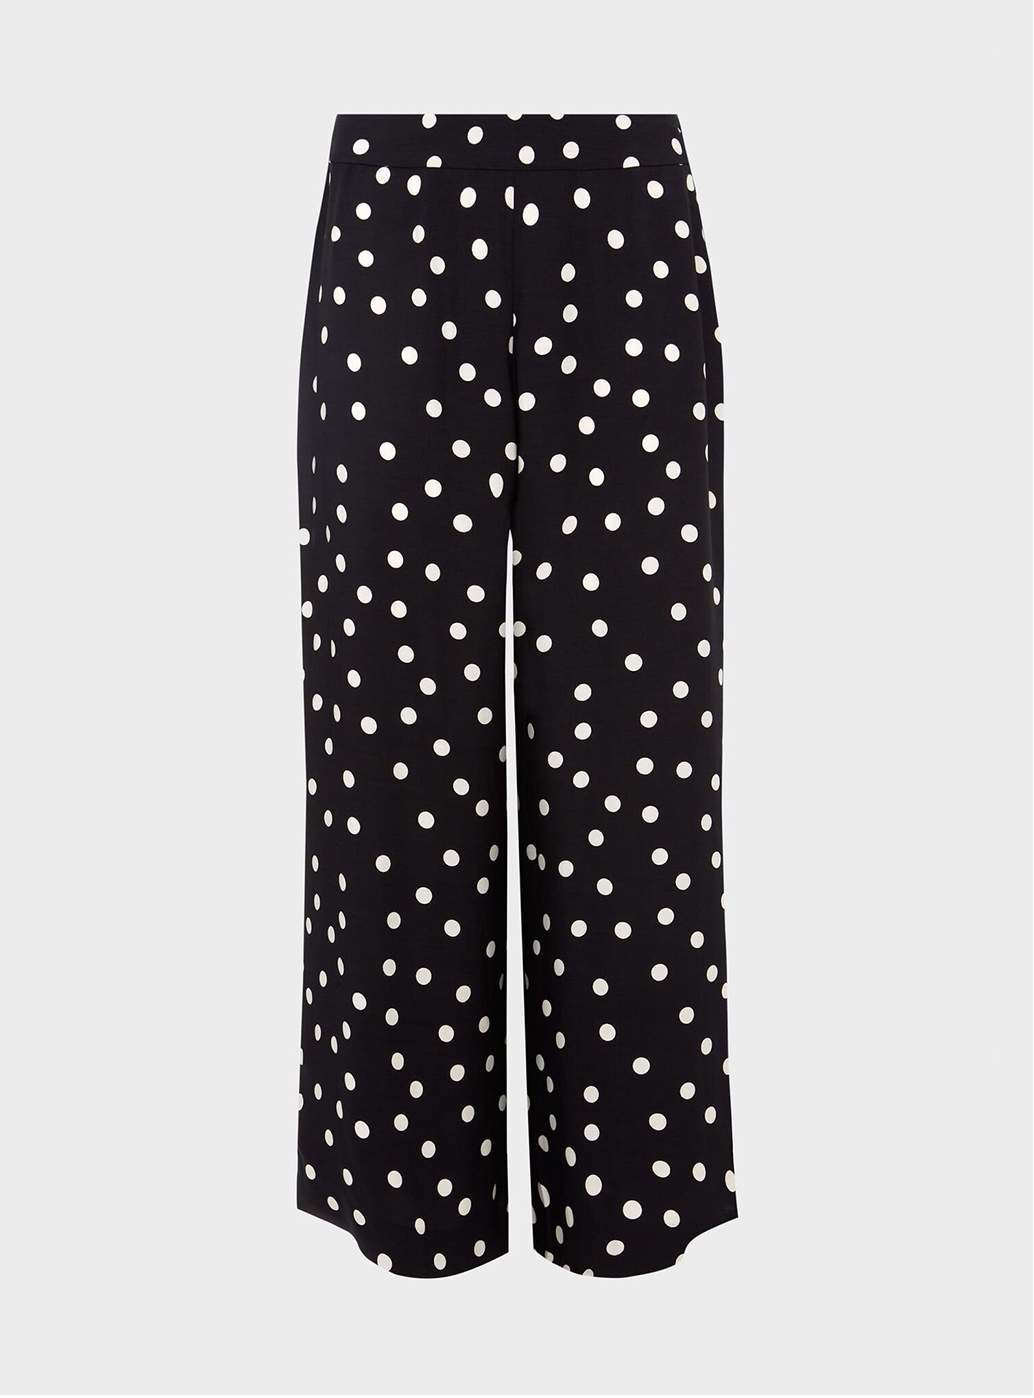 Hobbs Lauren Black and White Spotted Trousers